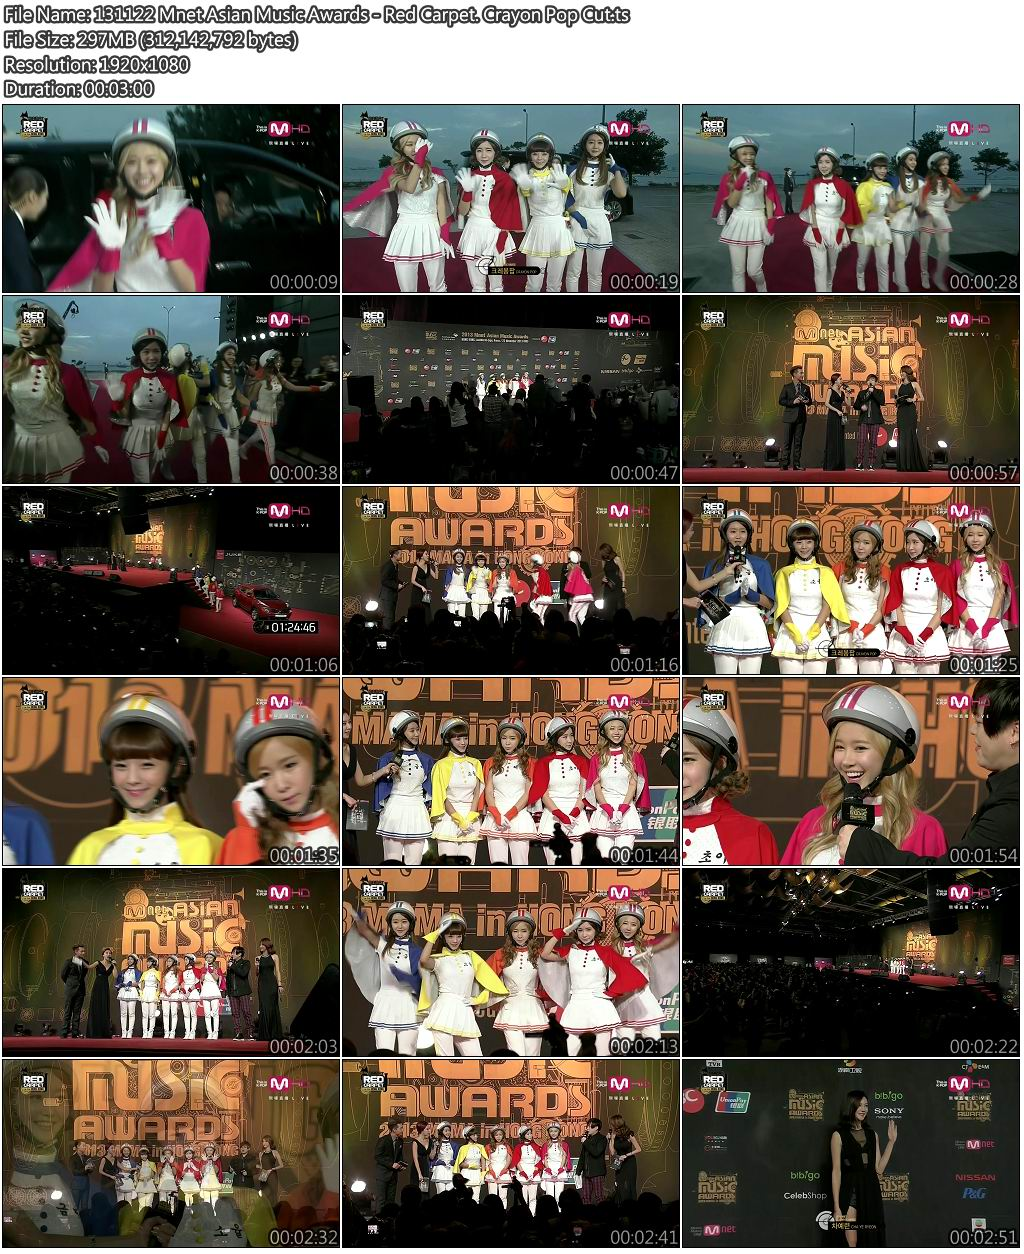 131122 Mnet Asian Music Awards - Red Carpet. Crayon Pop Cut.jpg